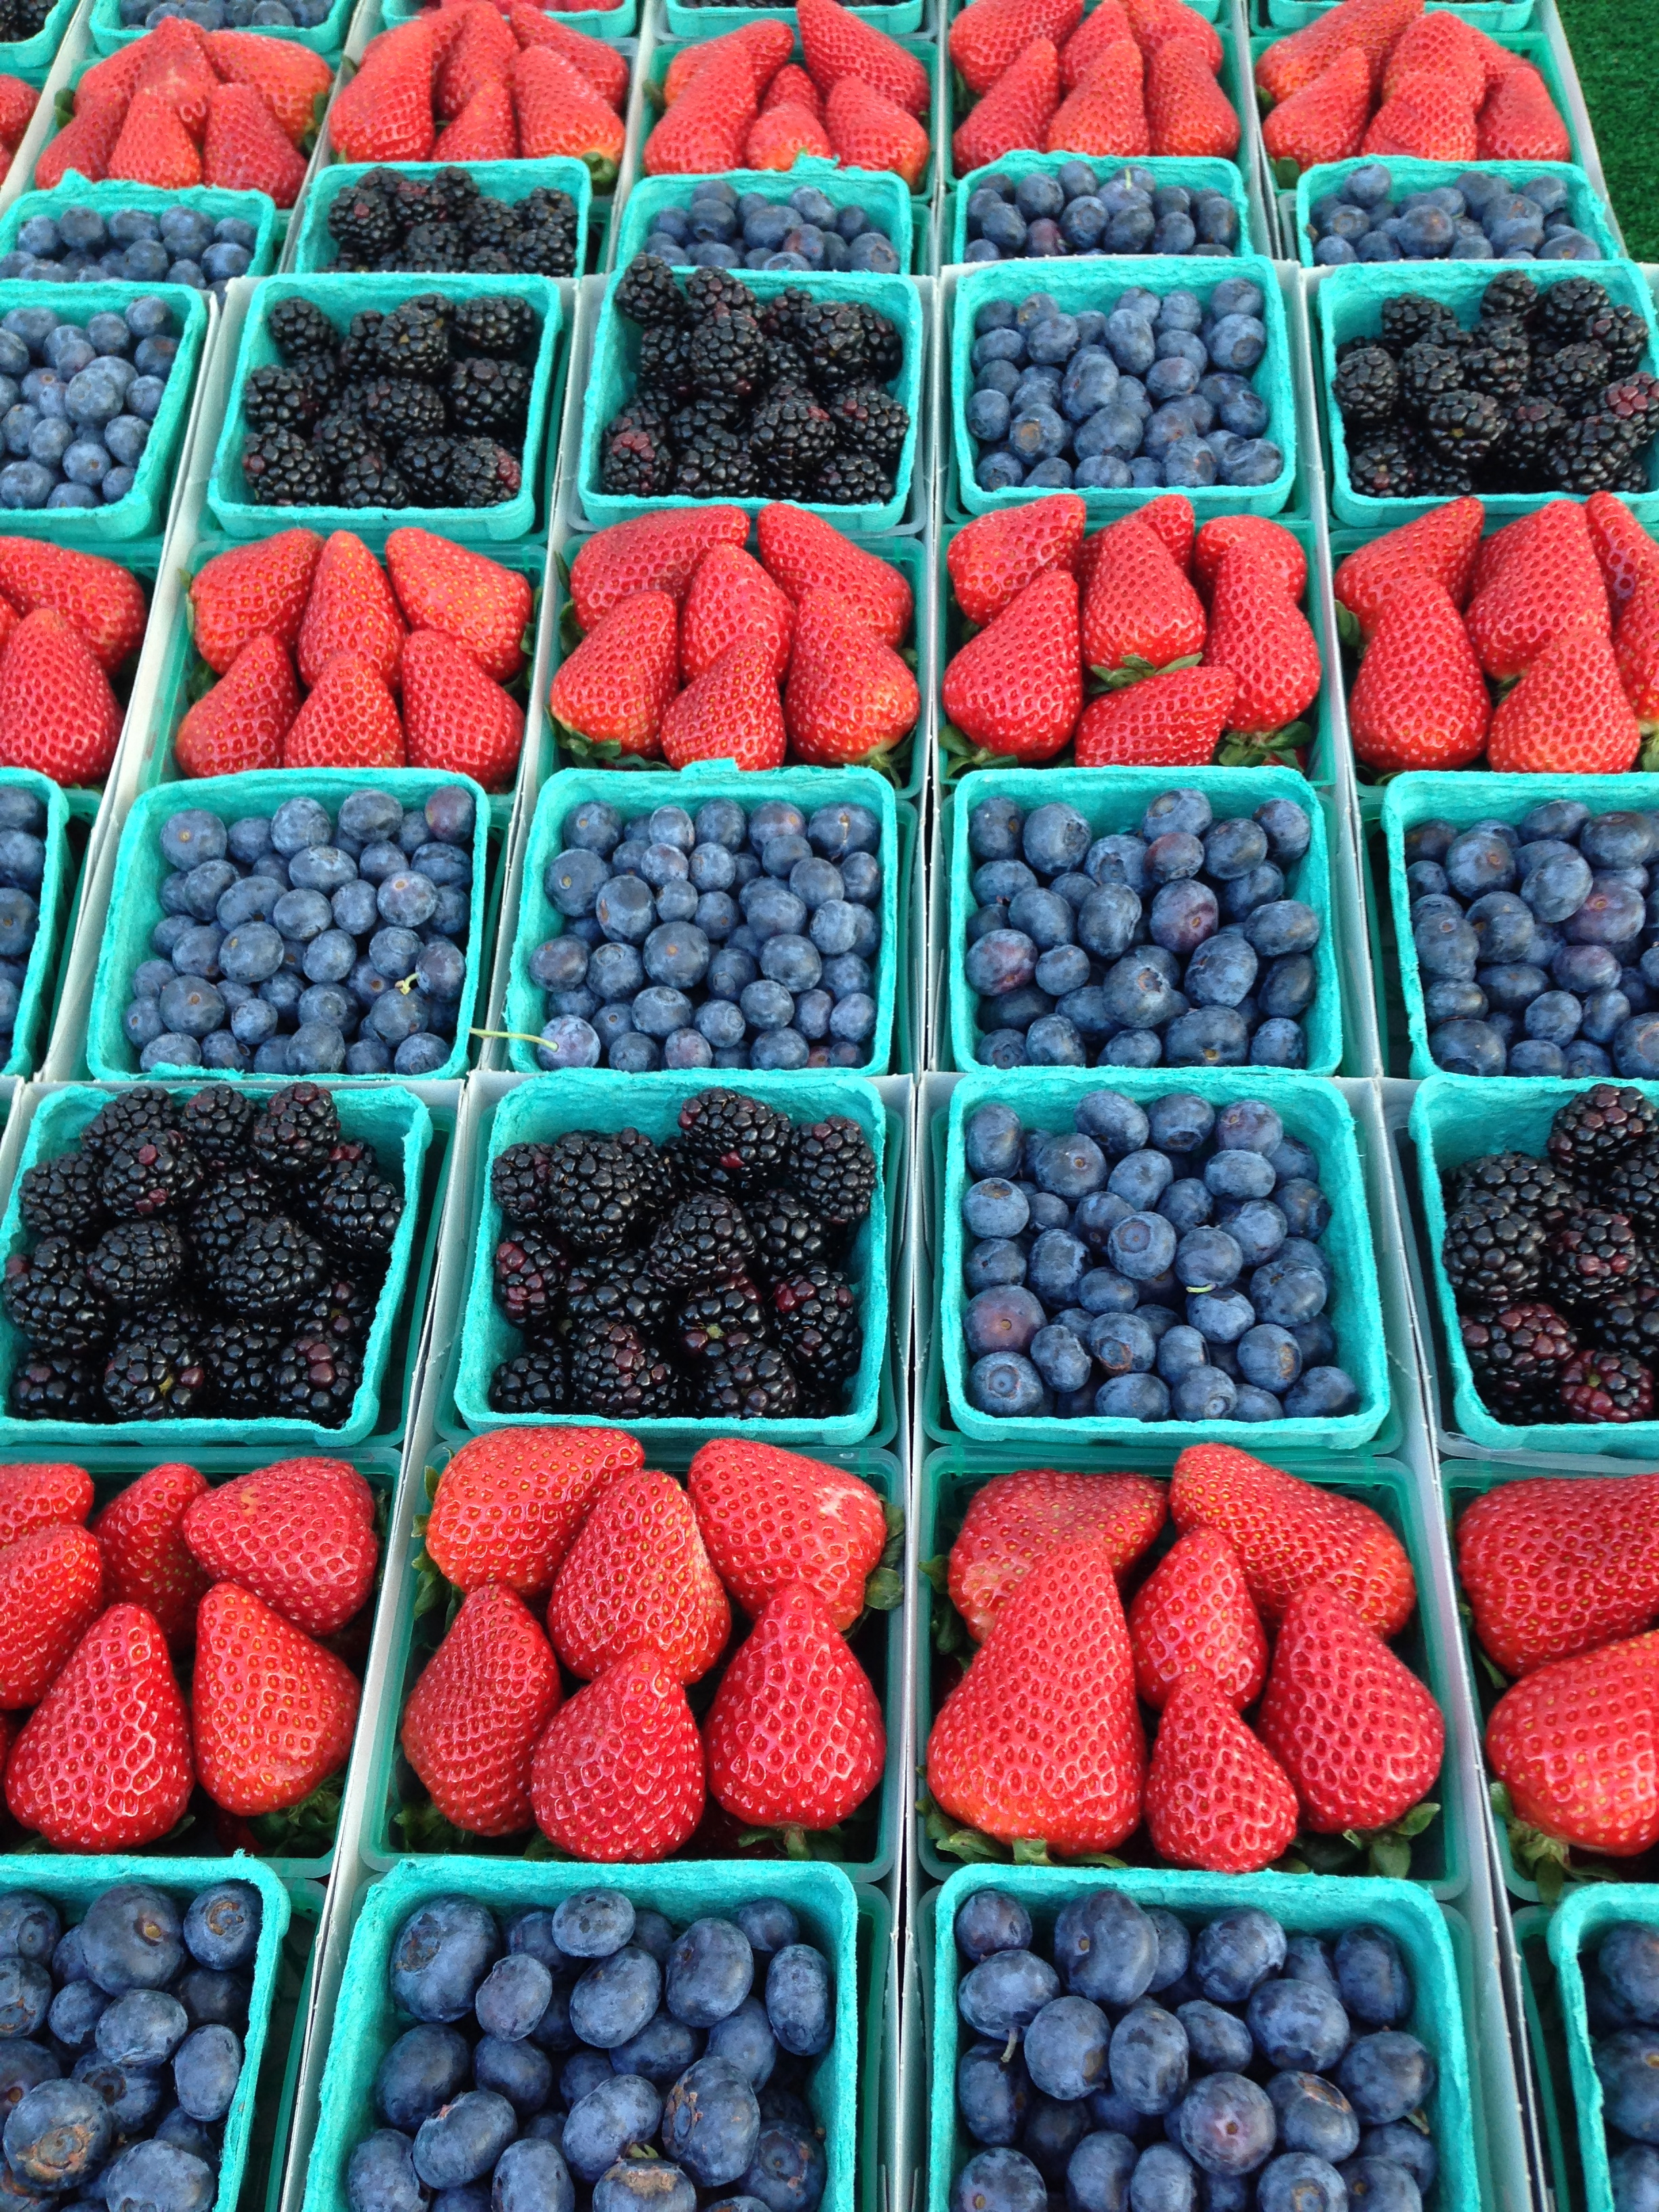 Fresh berries from the Brentwood Farmer's Market. SWEET!